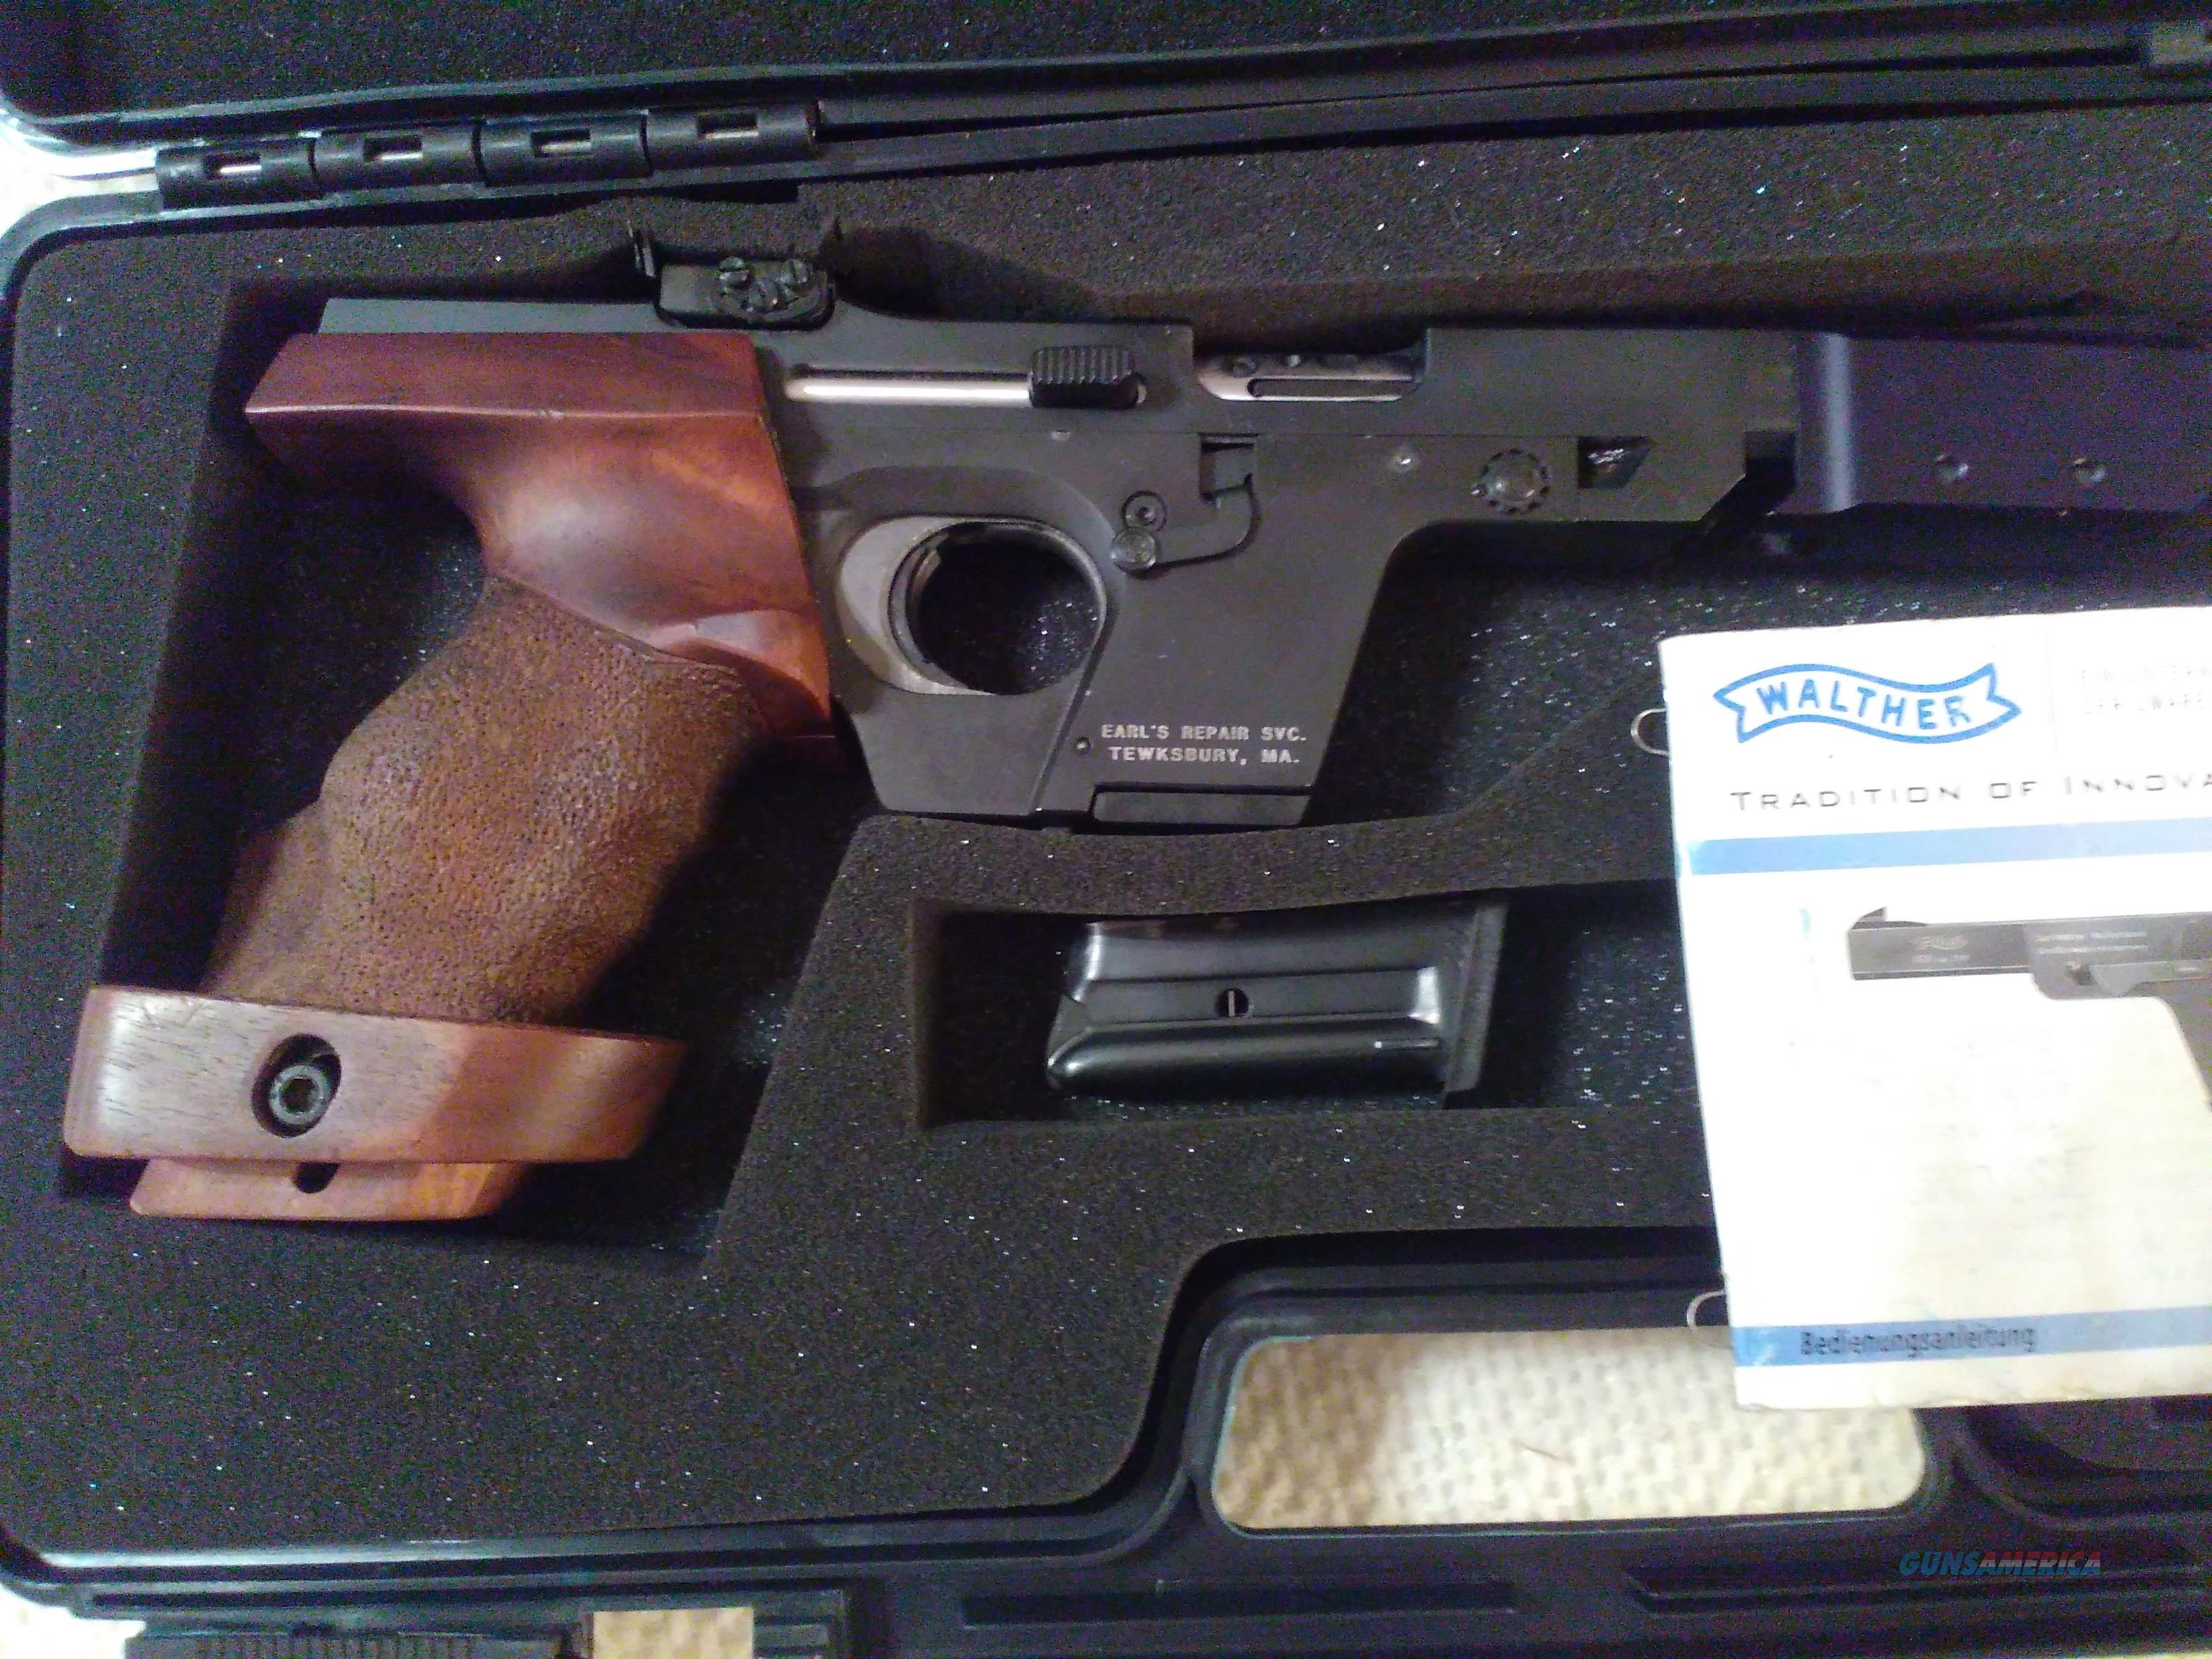 walther gsp 22 for sale rh gunsamerica com Walther Target Pistols walther gsp user manual